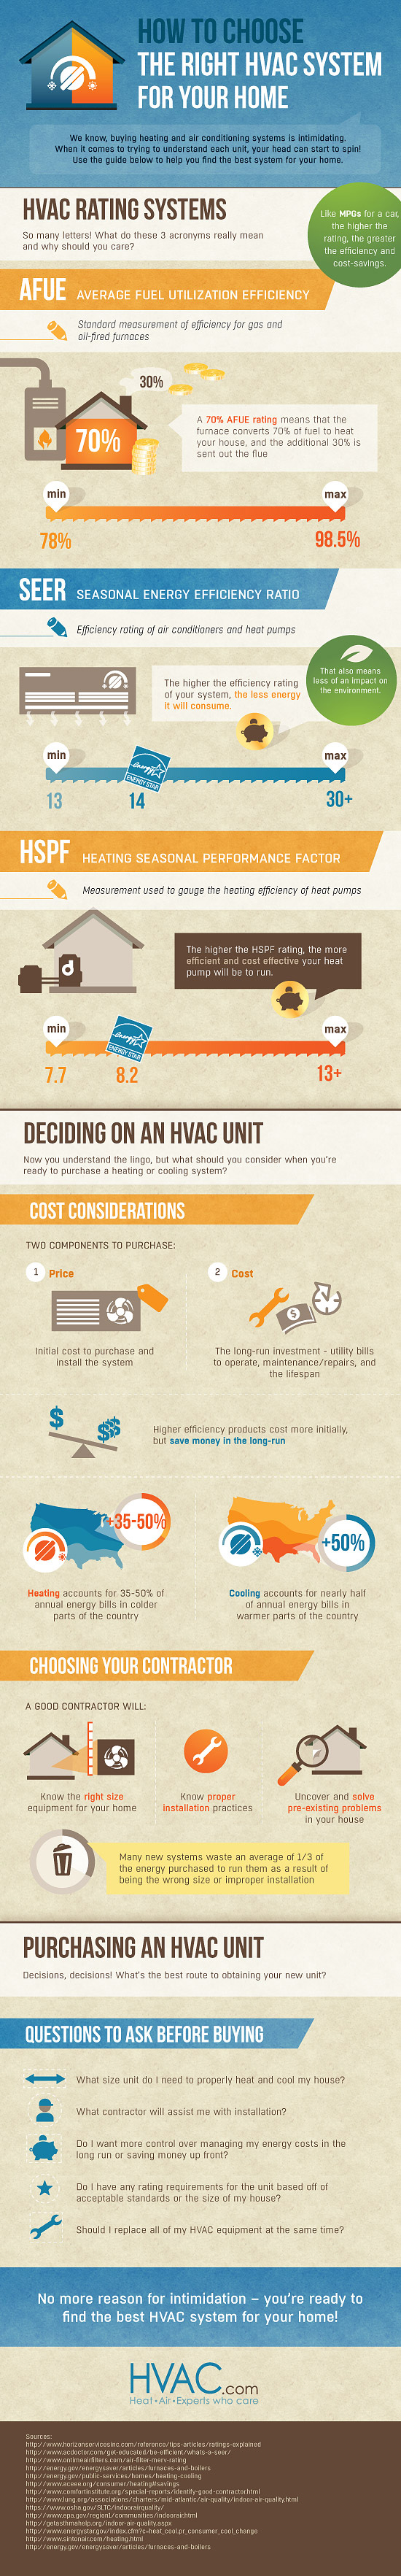 HVAC costs, HVAC environmental costs, HVAC efficiency, home efficiency, home heating and cooling, efficient heating and cooling, efficient homes, improving home efficiency